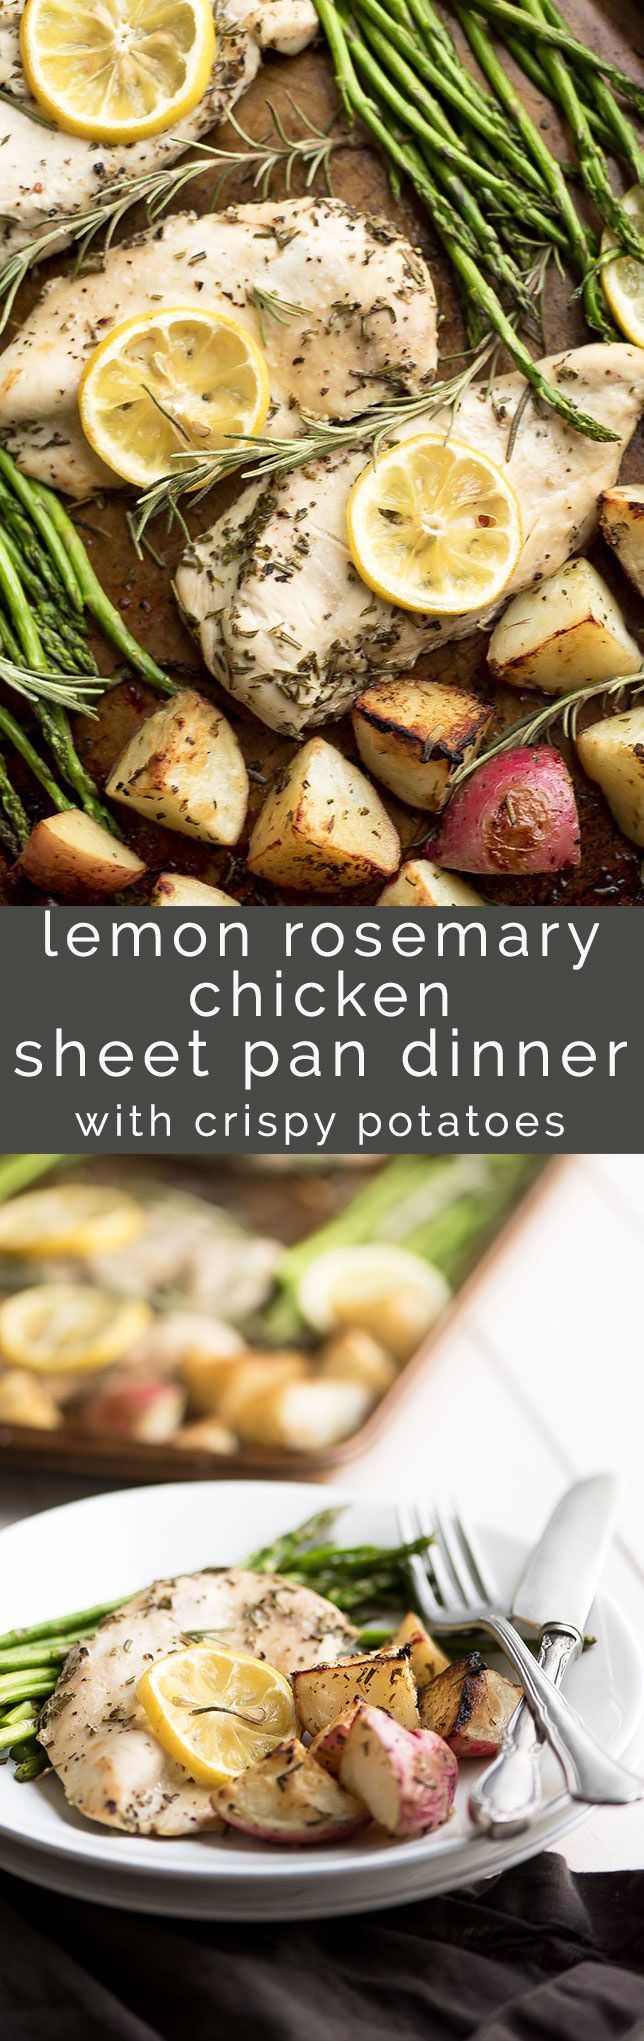 Lemon Rosemary Chicken Sheet Pan Dinner with Crispy Potatoes is the holy grails of dinner! Garlic, crispy potatoes are cooked right along lemon rosemary scented asparagus and chicken, on one pan!